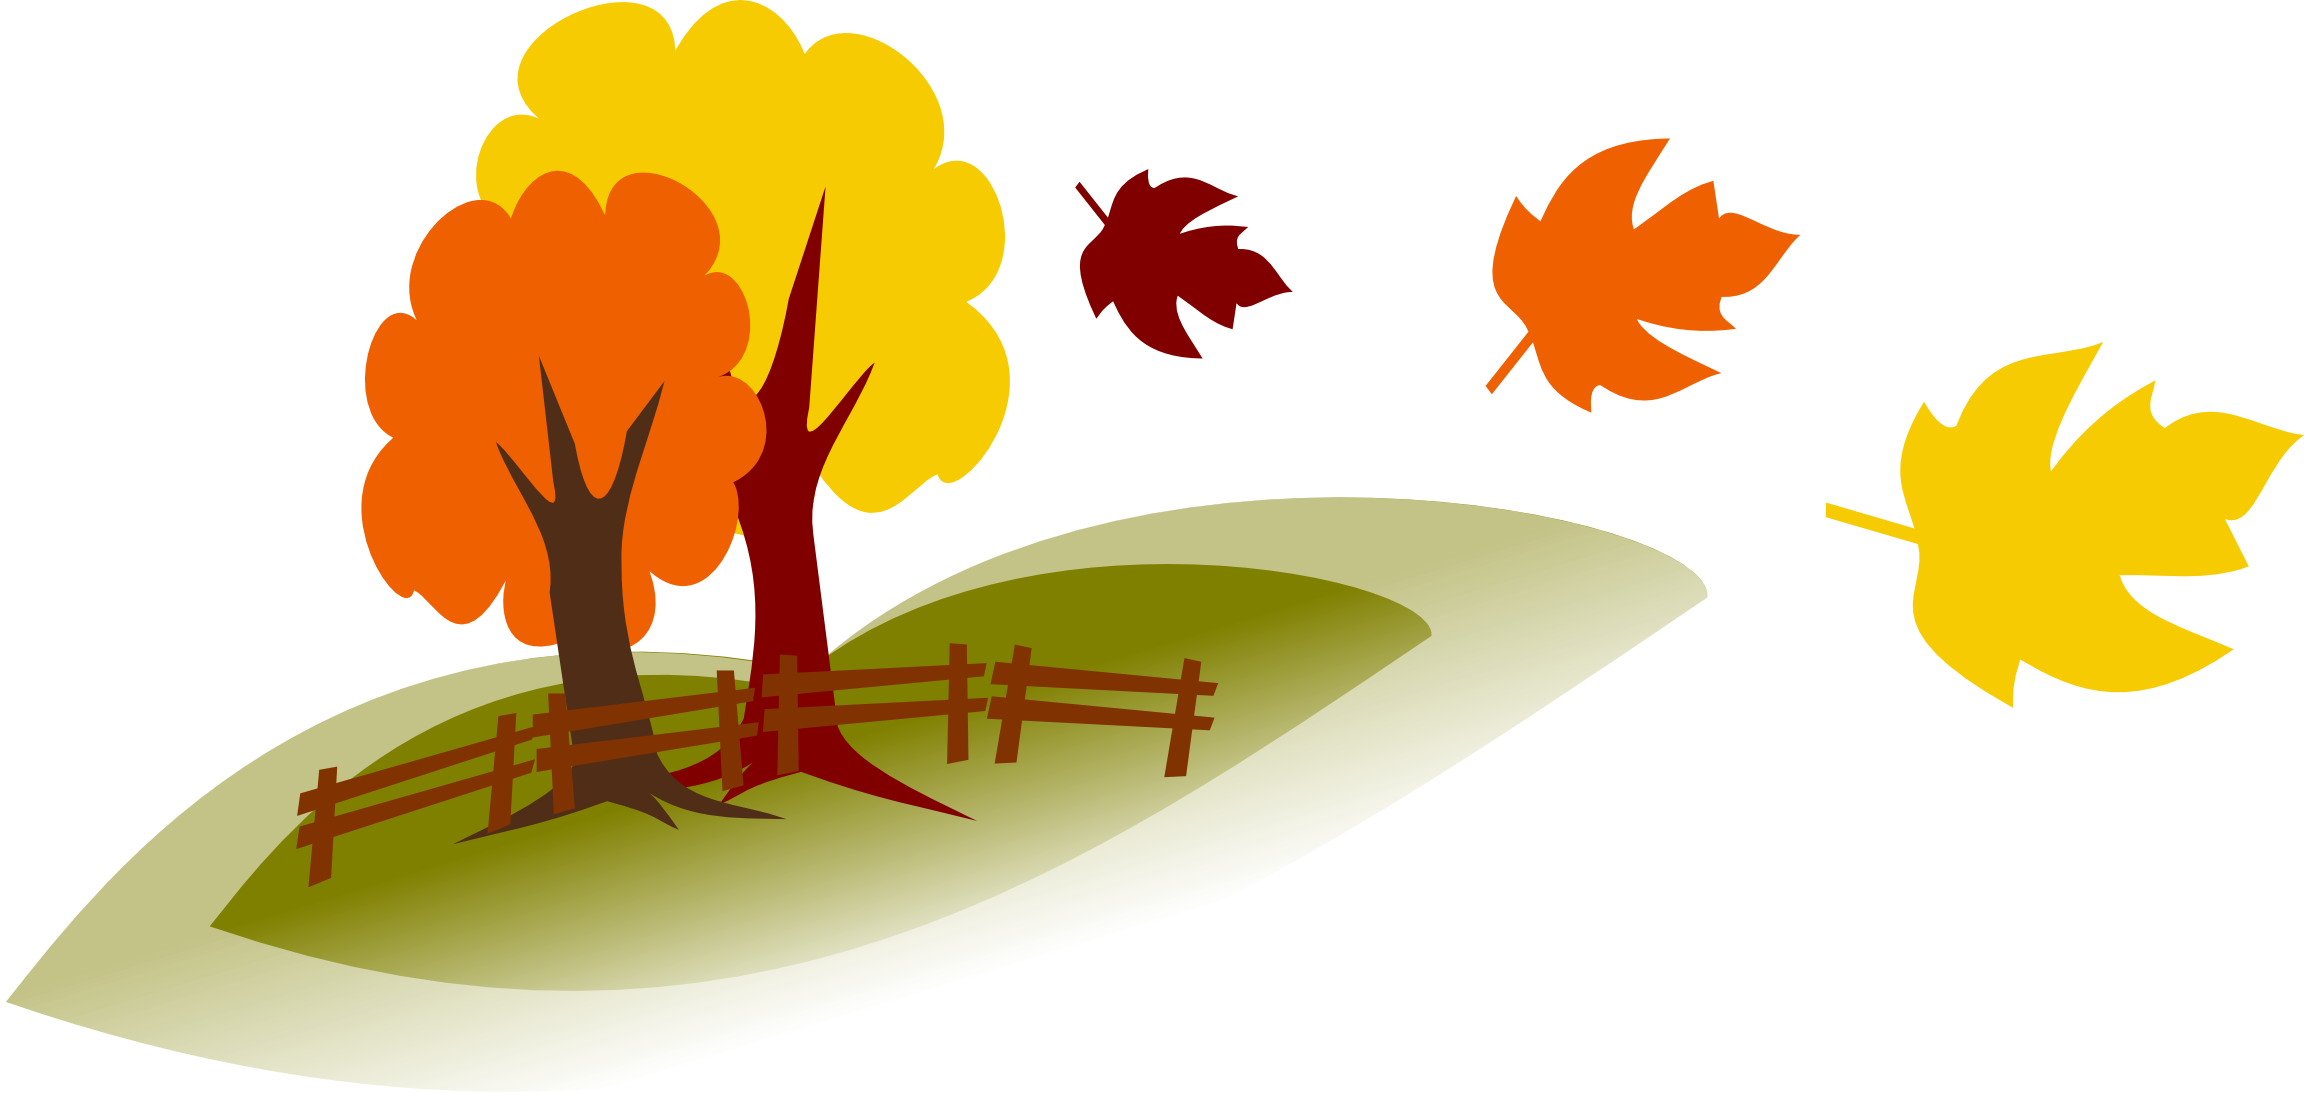 august fall store. Fundraiser clipart spring